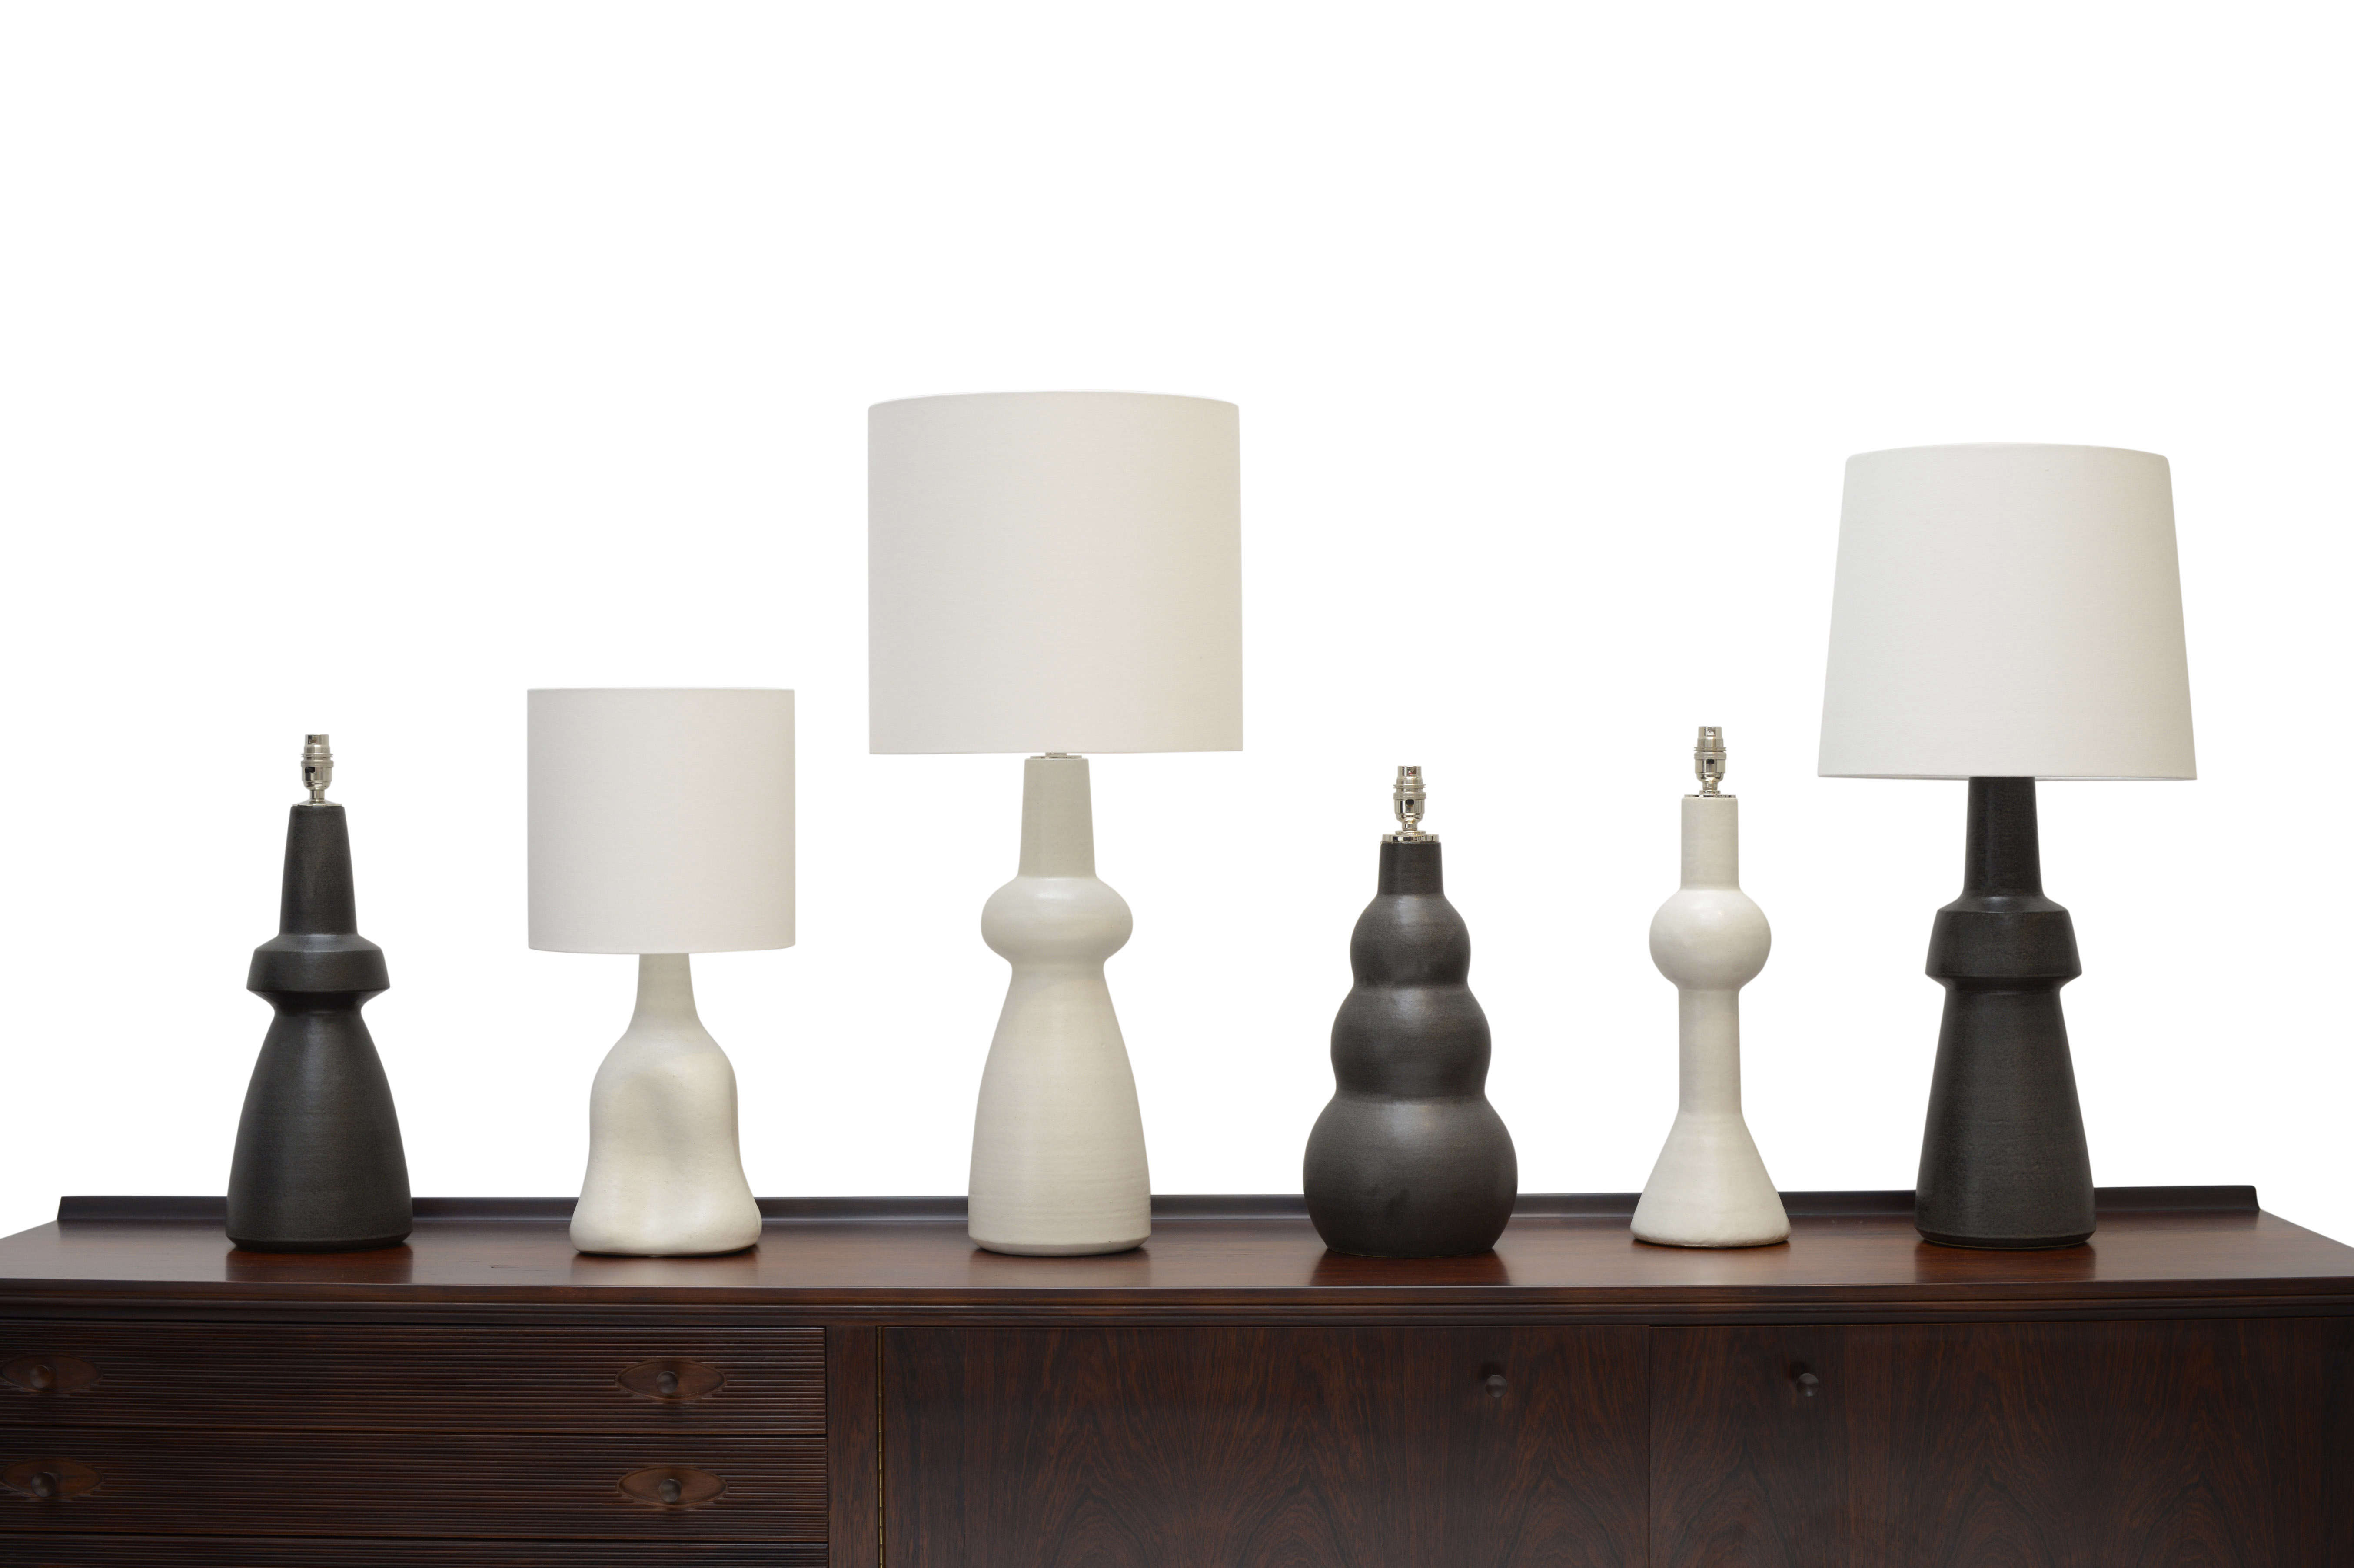 Tall table lamps at home and interior design ideas awesome trend alert the sculptural ceramic table lamp examples geotapseo Gallery